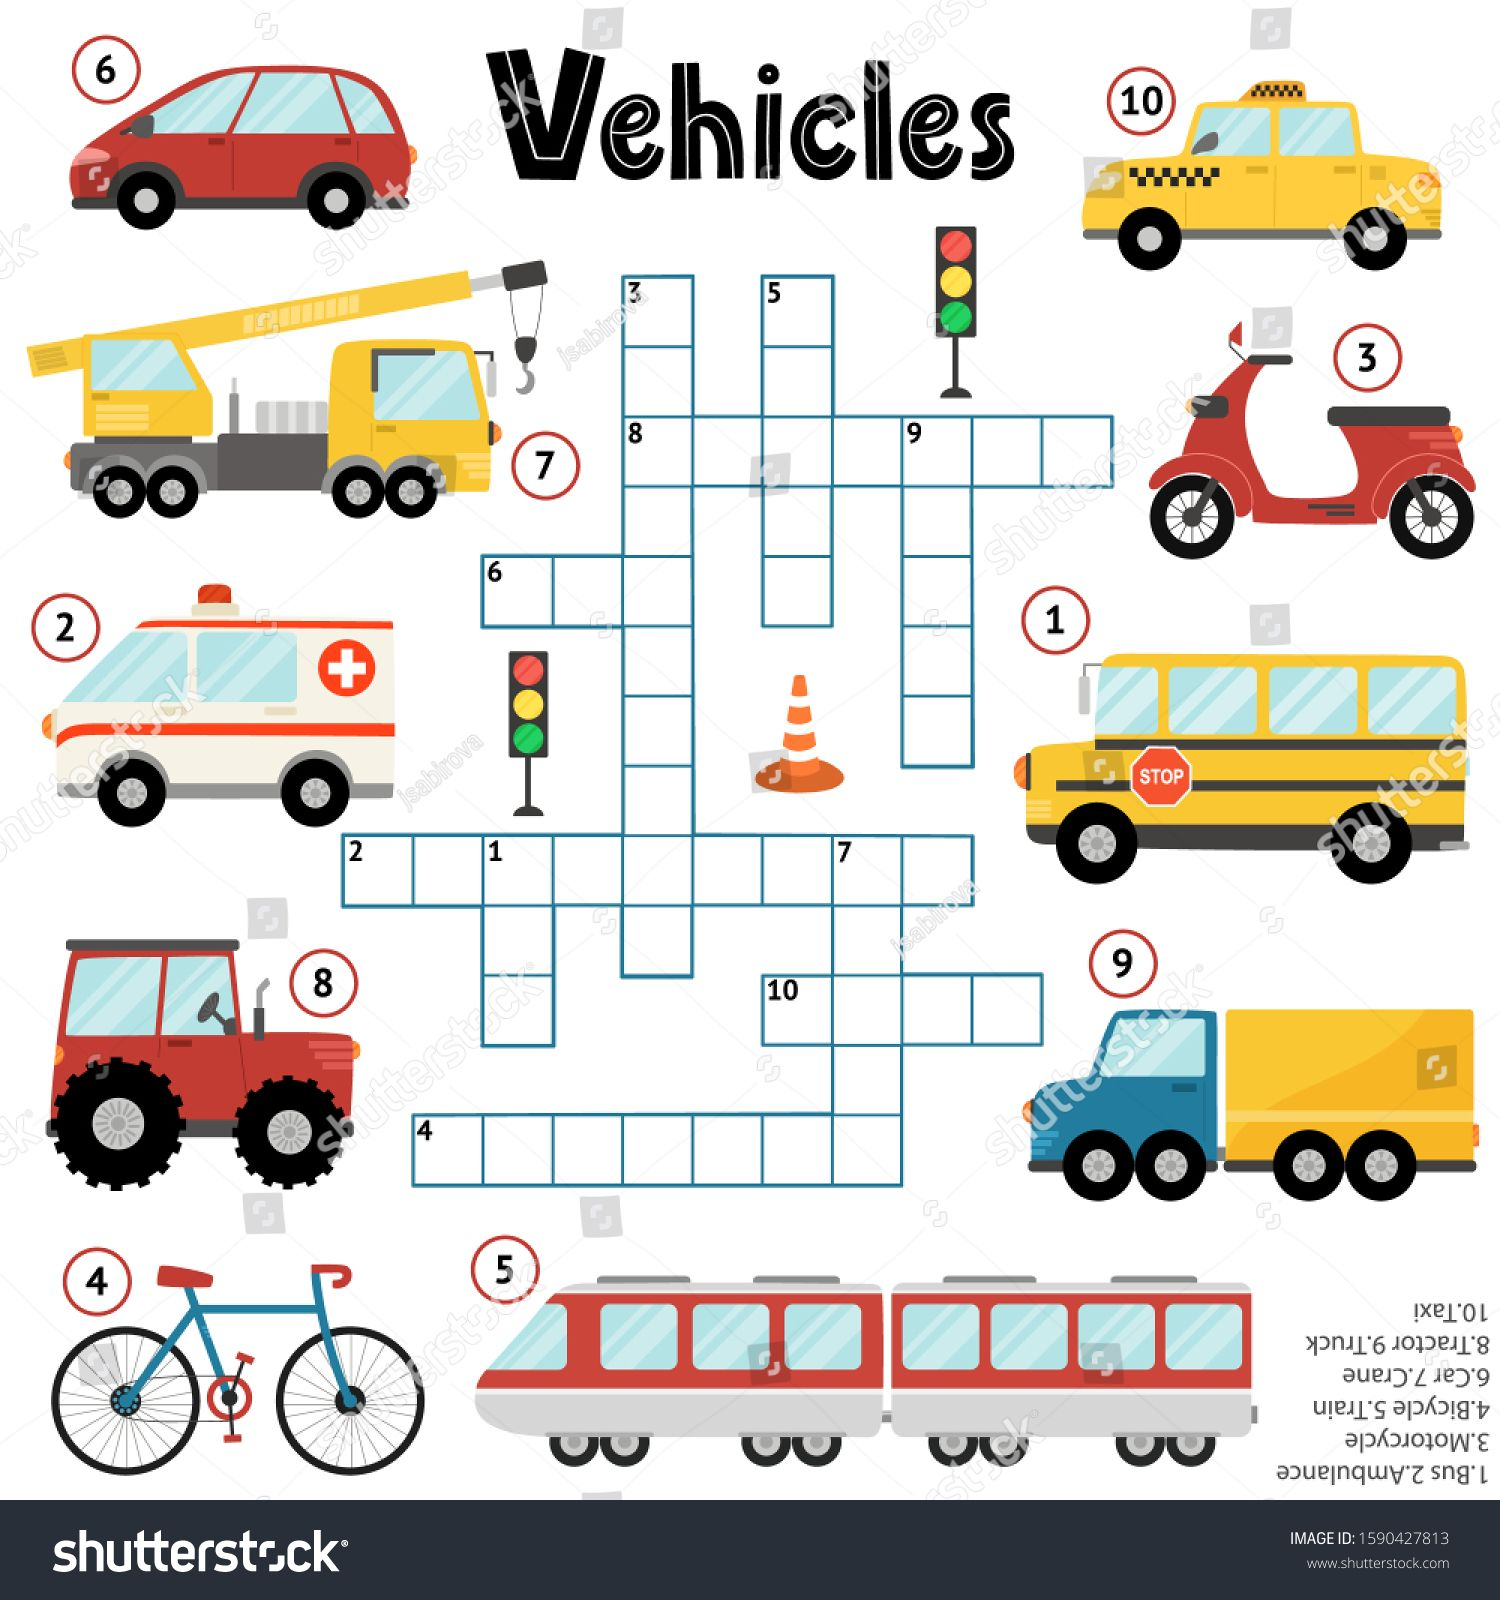 Crossword Puzzle Game For Kids About Vehicles Educational Activity Sheet For Boys With T Puzzle Games For Kids Crossword Puzzle Games Activity Sheets For Kids